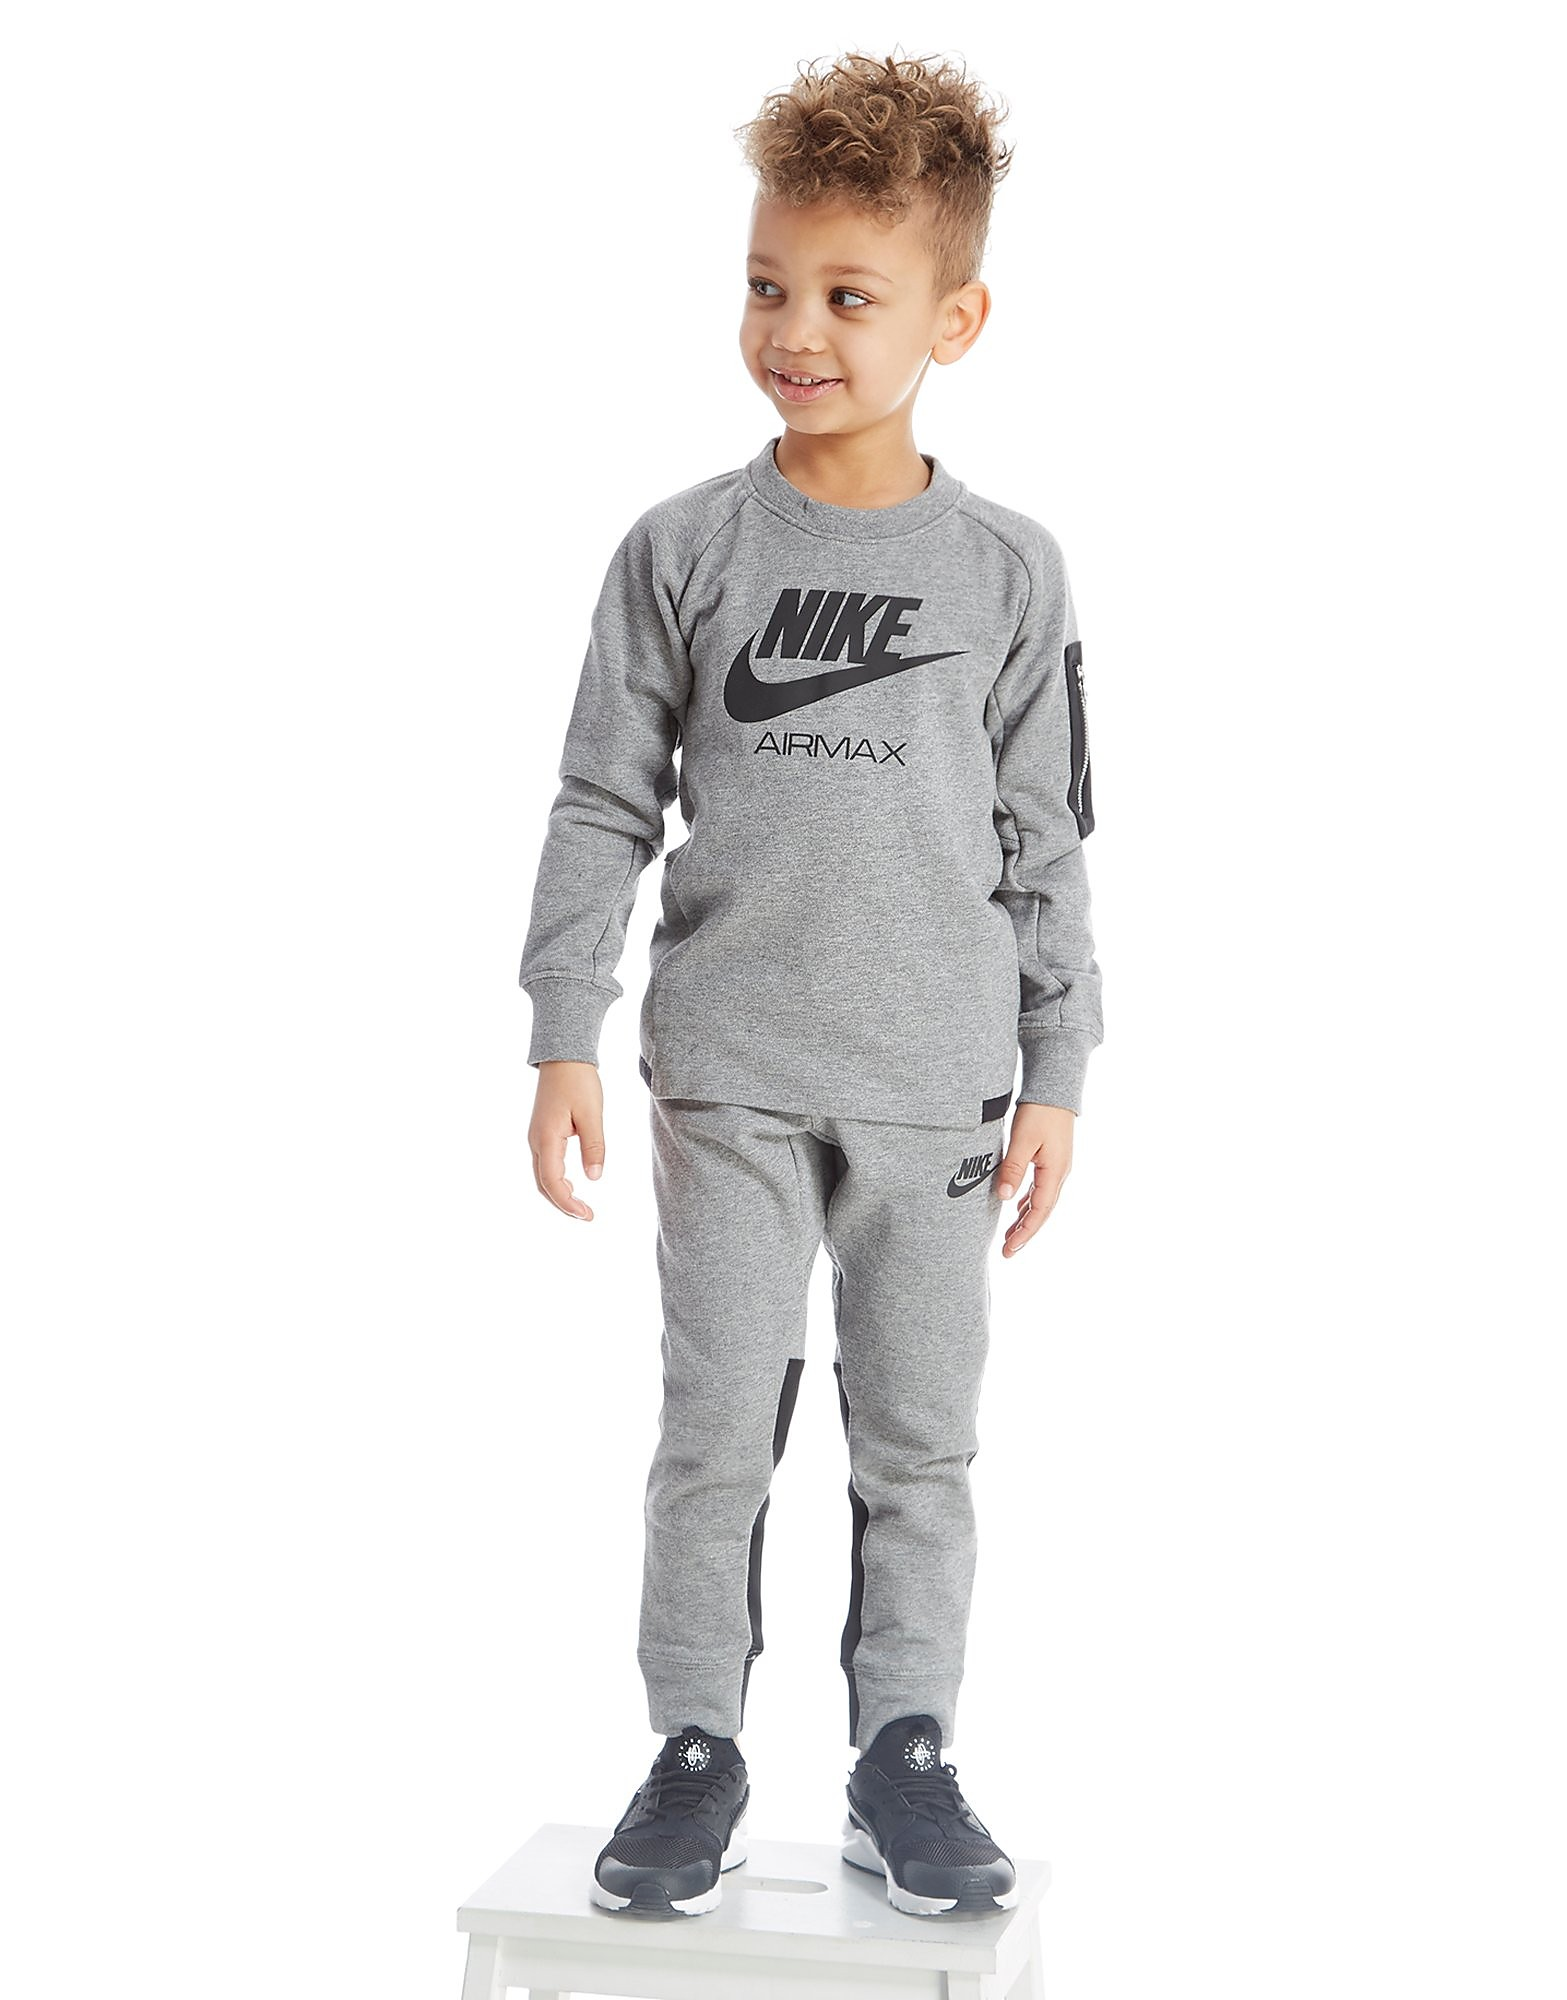 Nike Air Max Crew Tracksuit Children